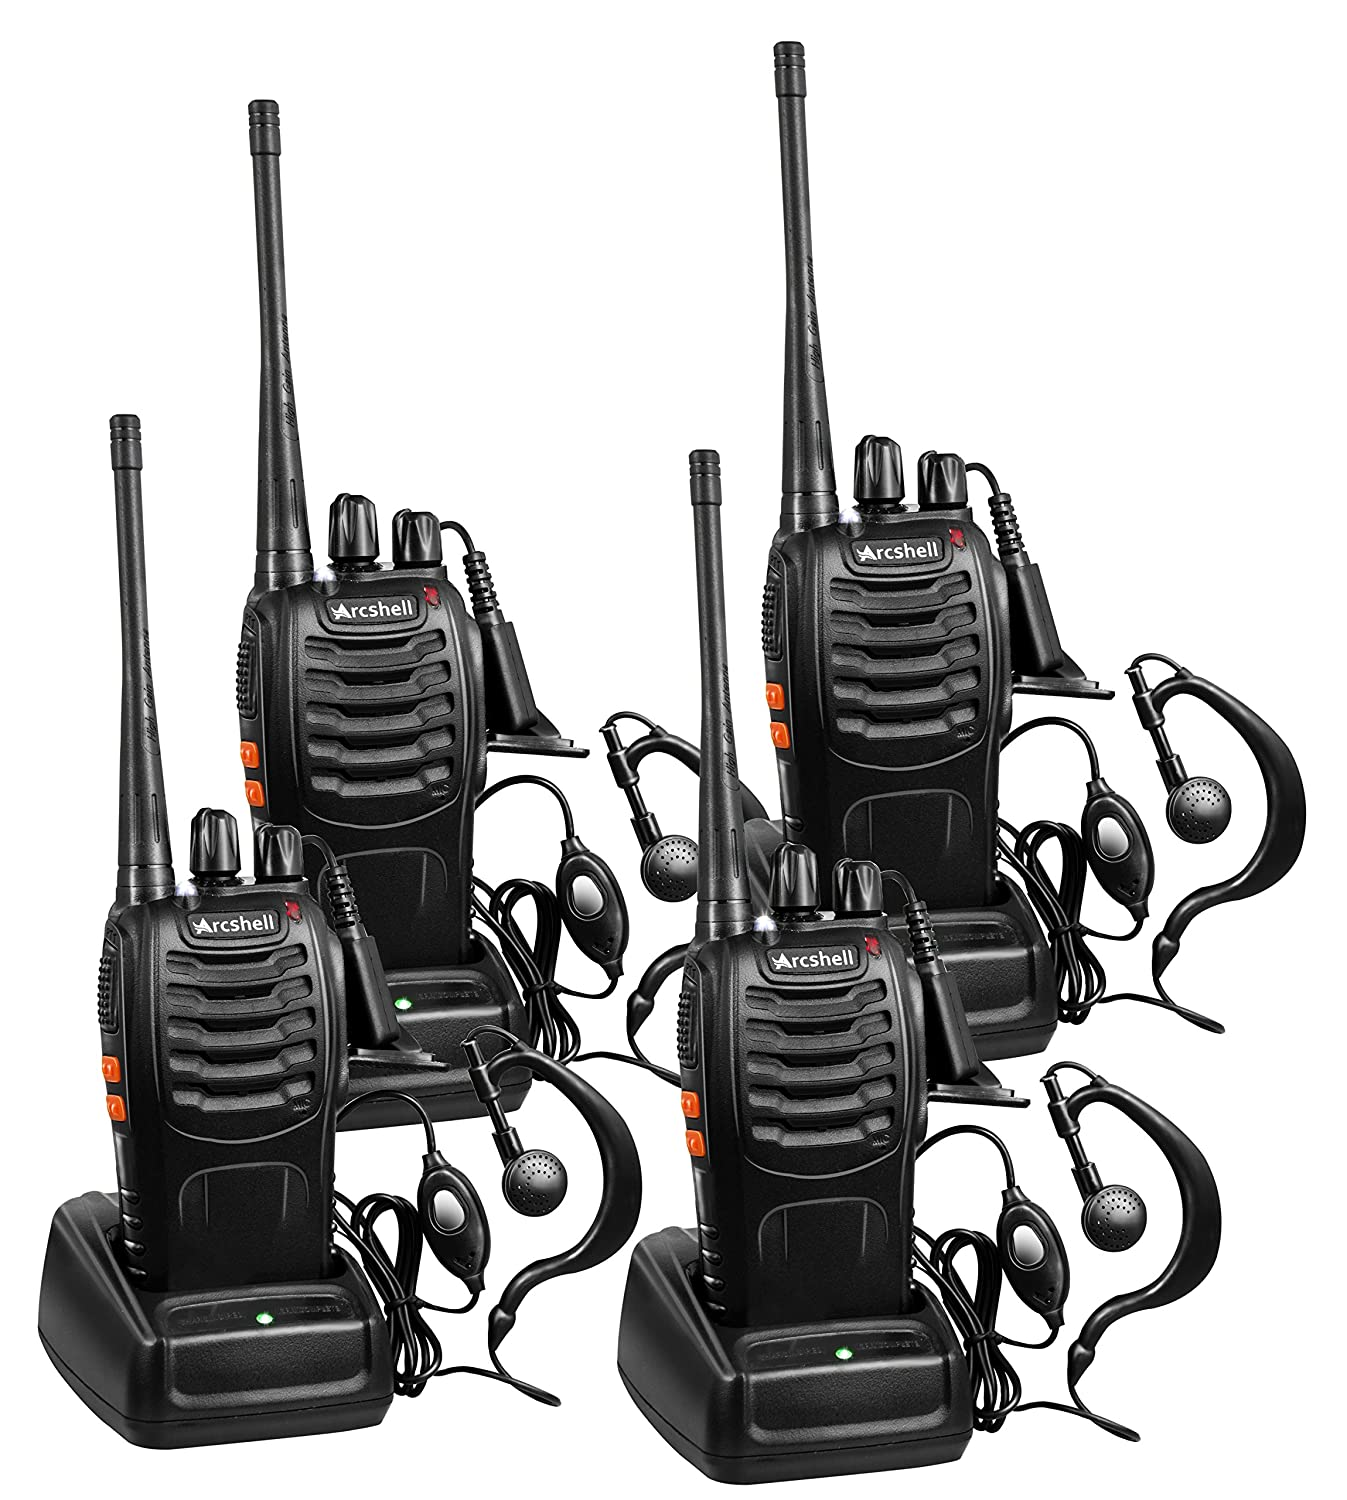 Arcshell Rechargeable Long Range Two-way Radios with Earpiece 4 Pack UHF 400-470Mhz Walkie Talkies Li-ion Battery and Charger included